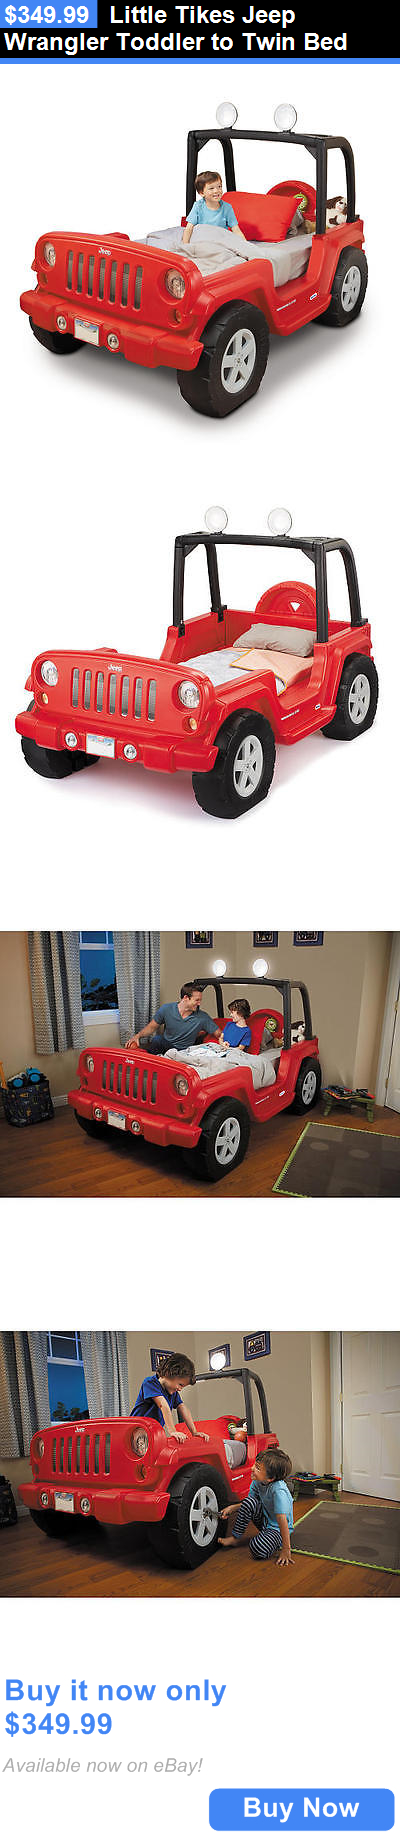 Best Kids Furniture Little Tikes Jeep Wrangler Toddler To Twin 400 x 300